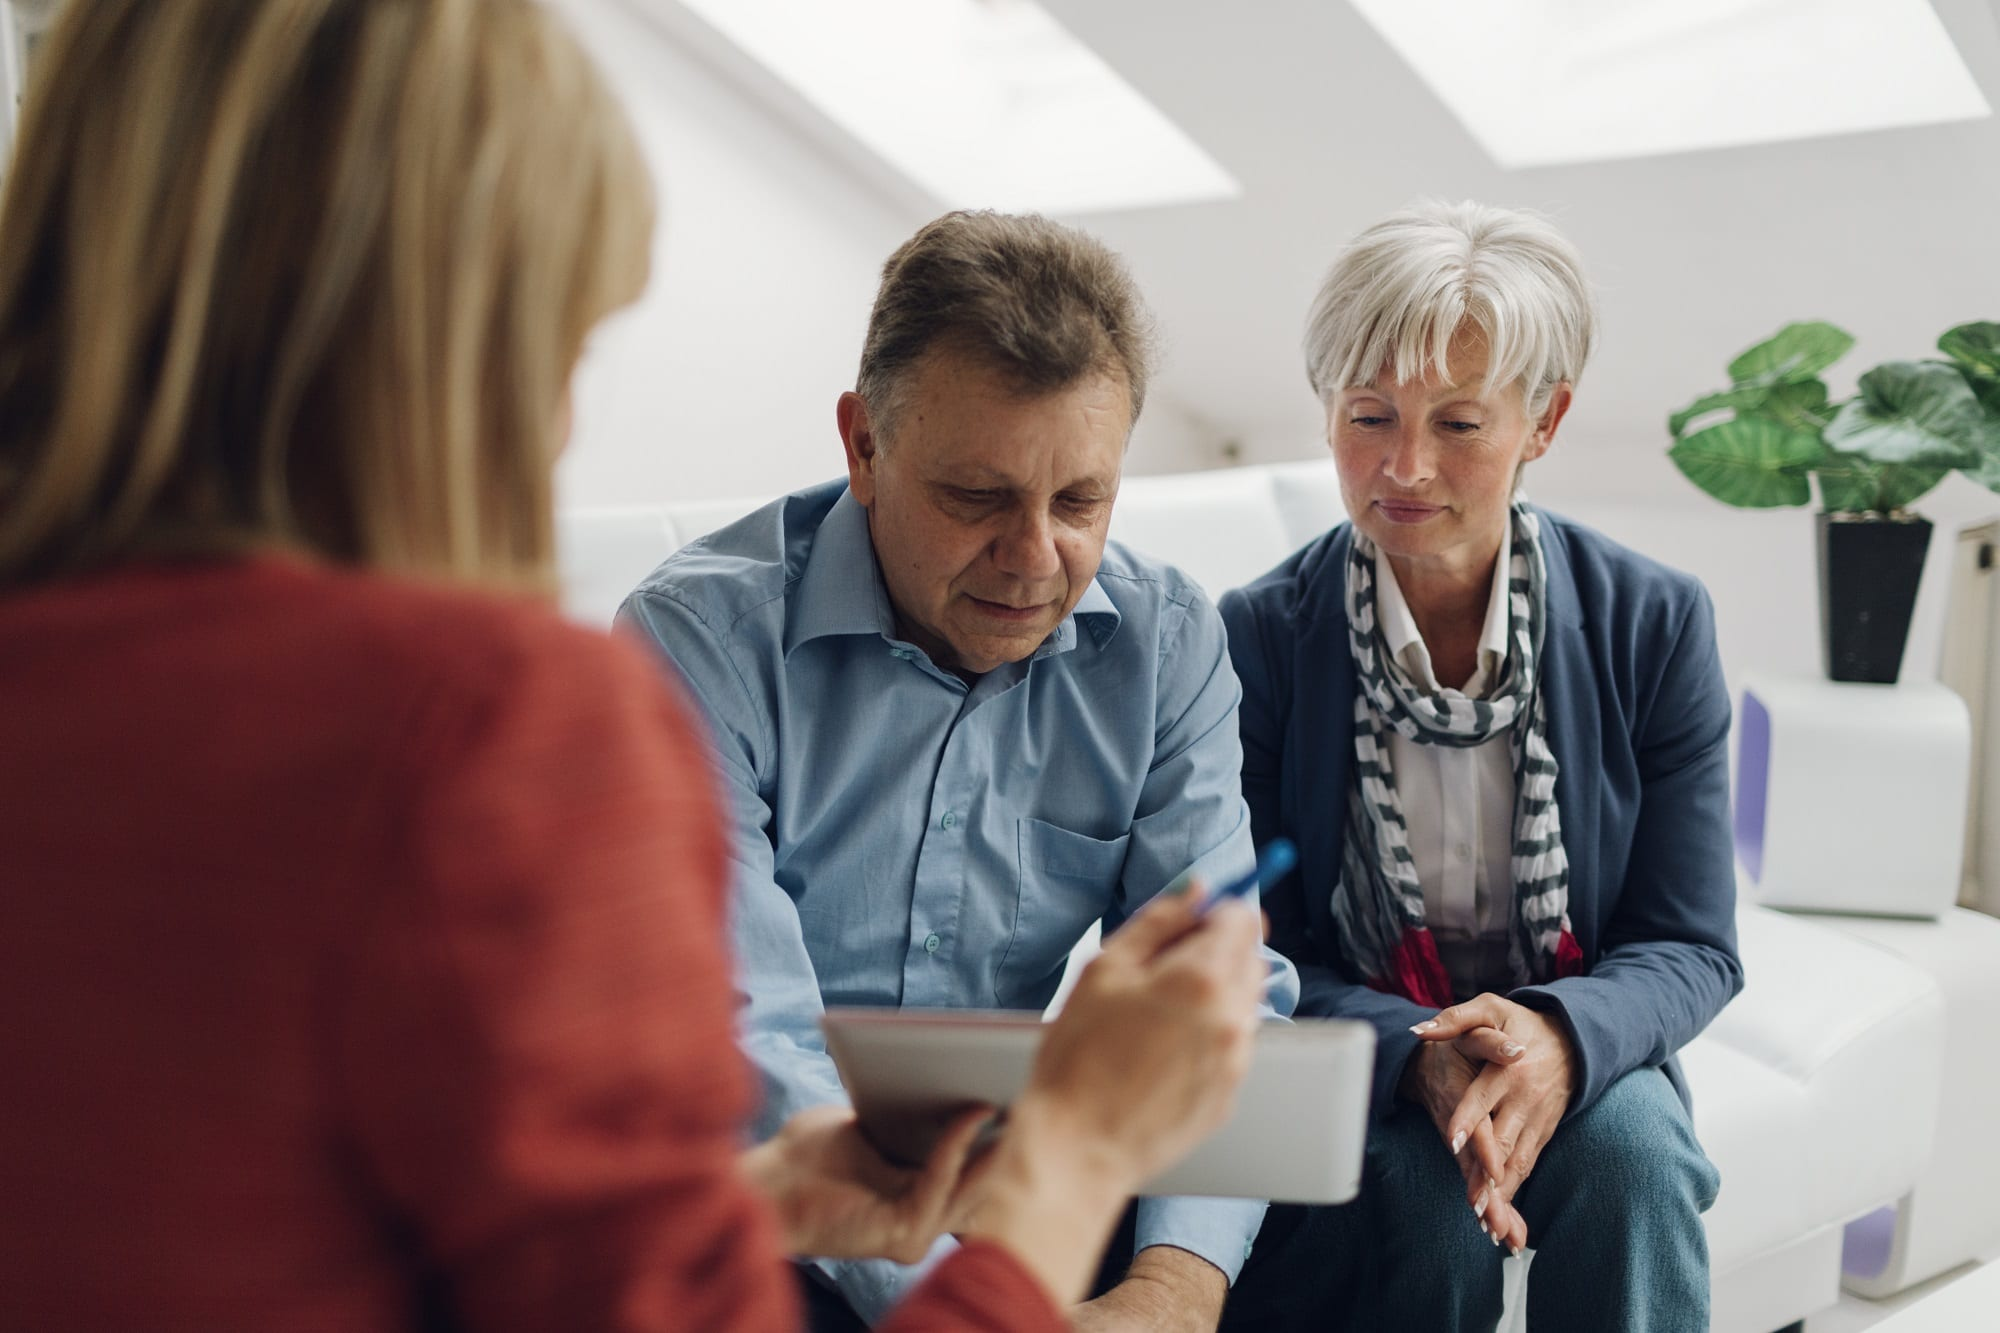 pension-tension:-should-you-take-the-lump-sum-or-trust-lifetime-payments?